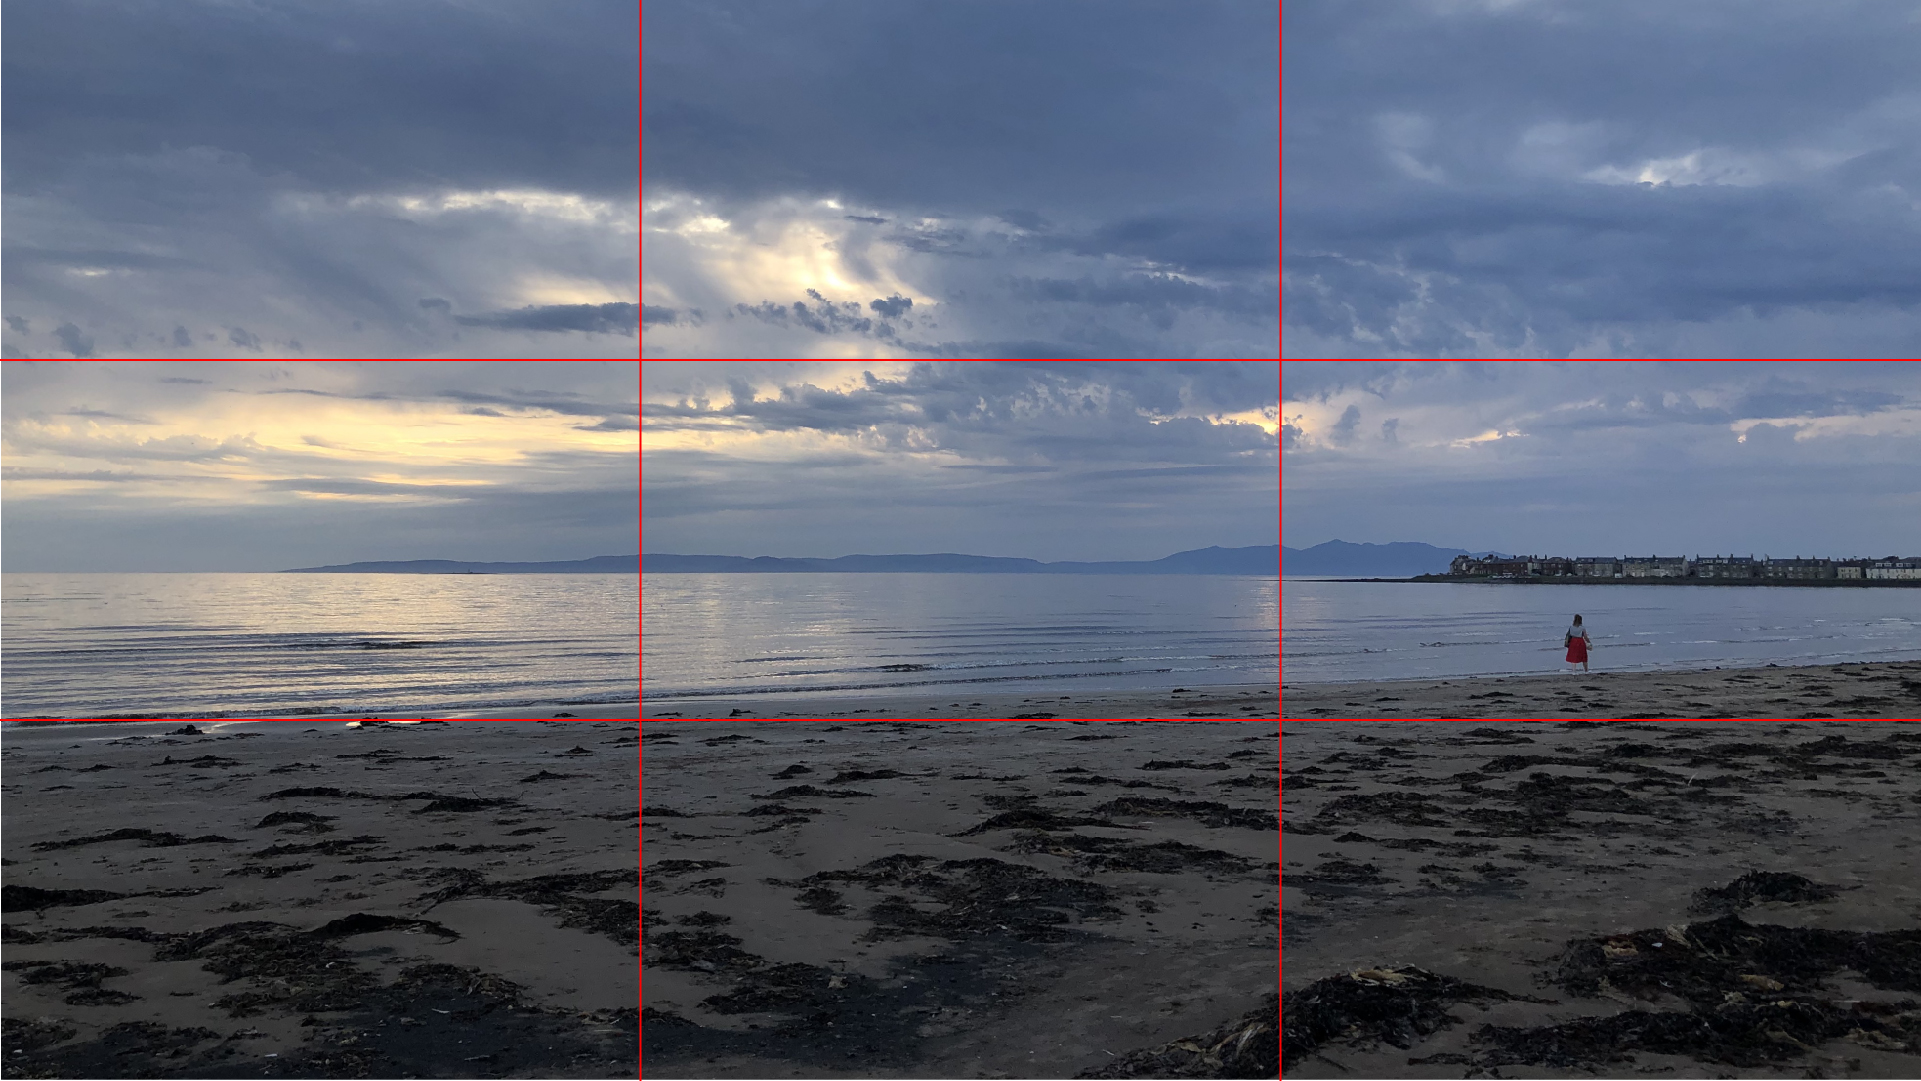 An example of poor use of the rule of thirds